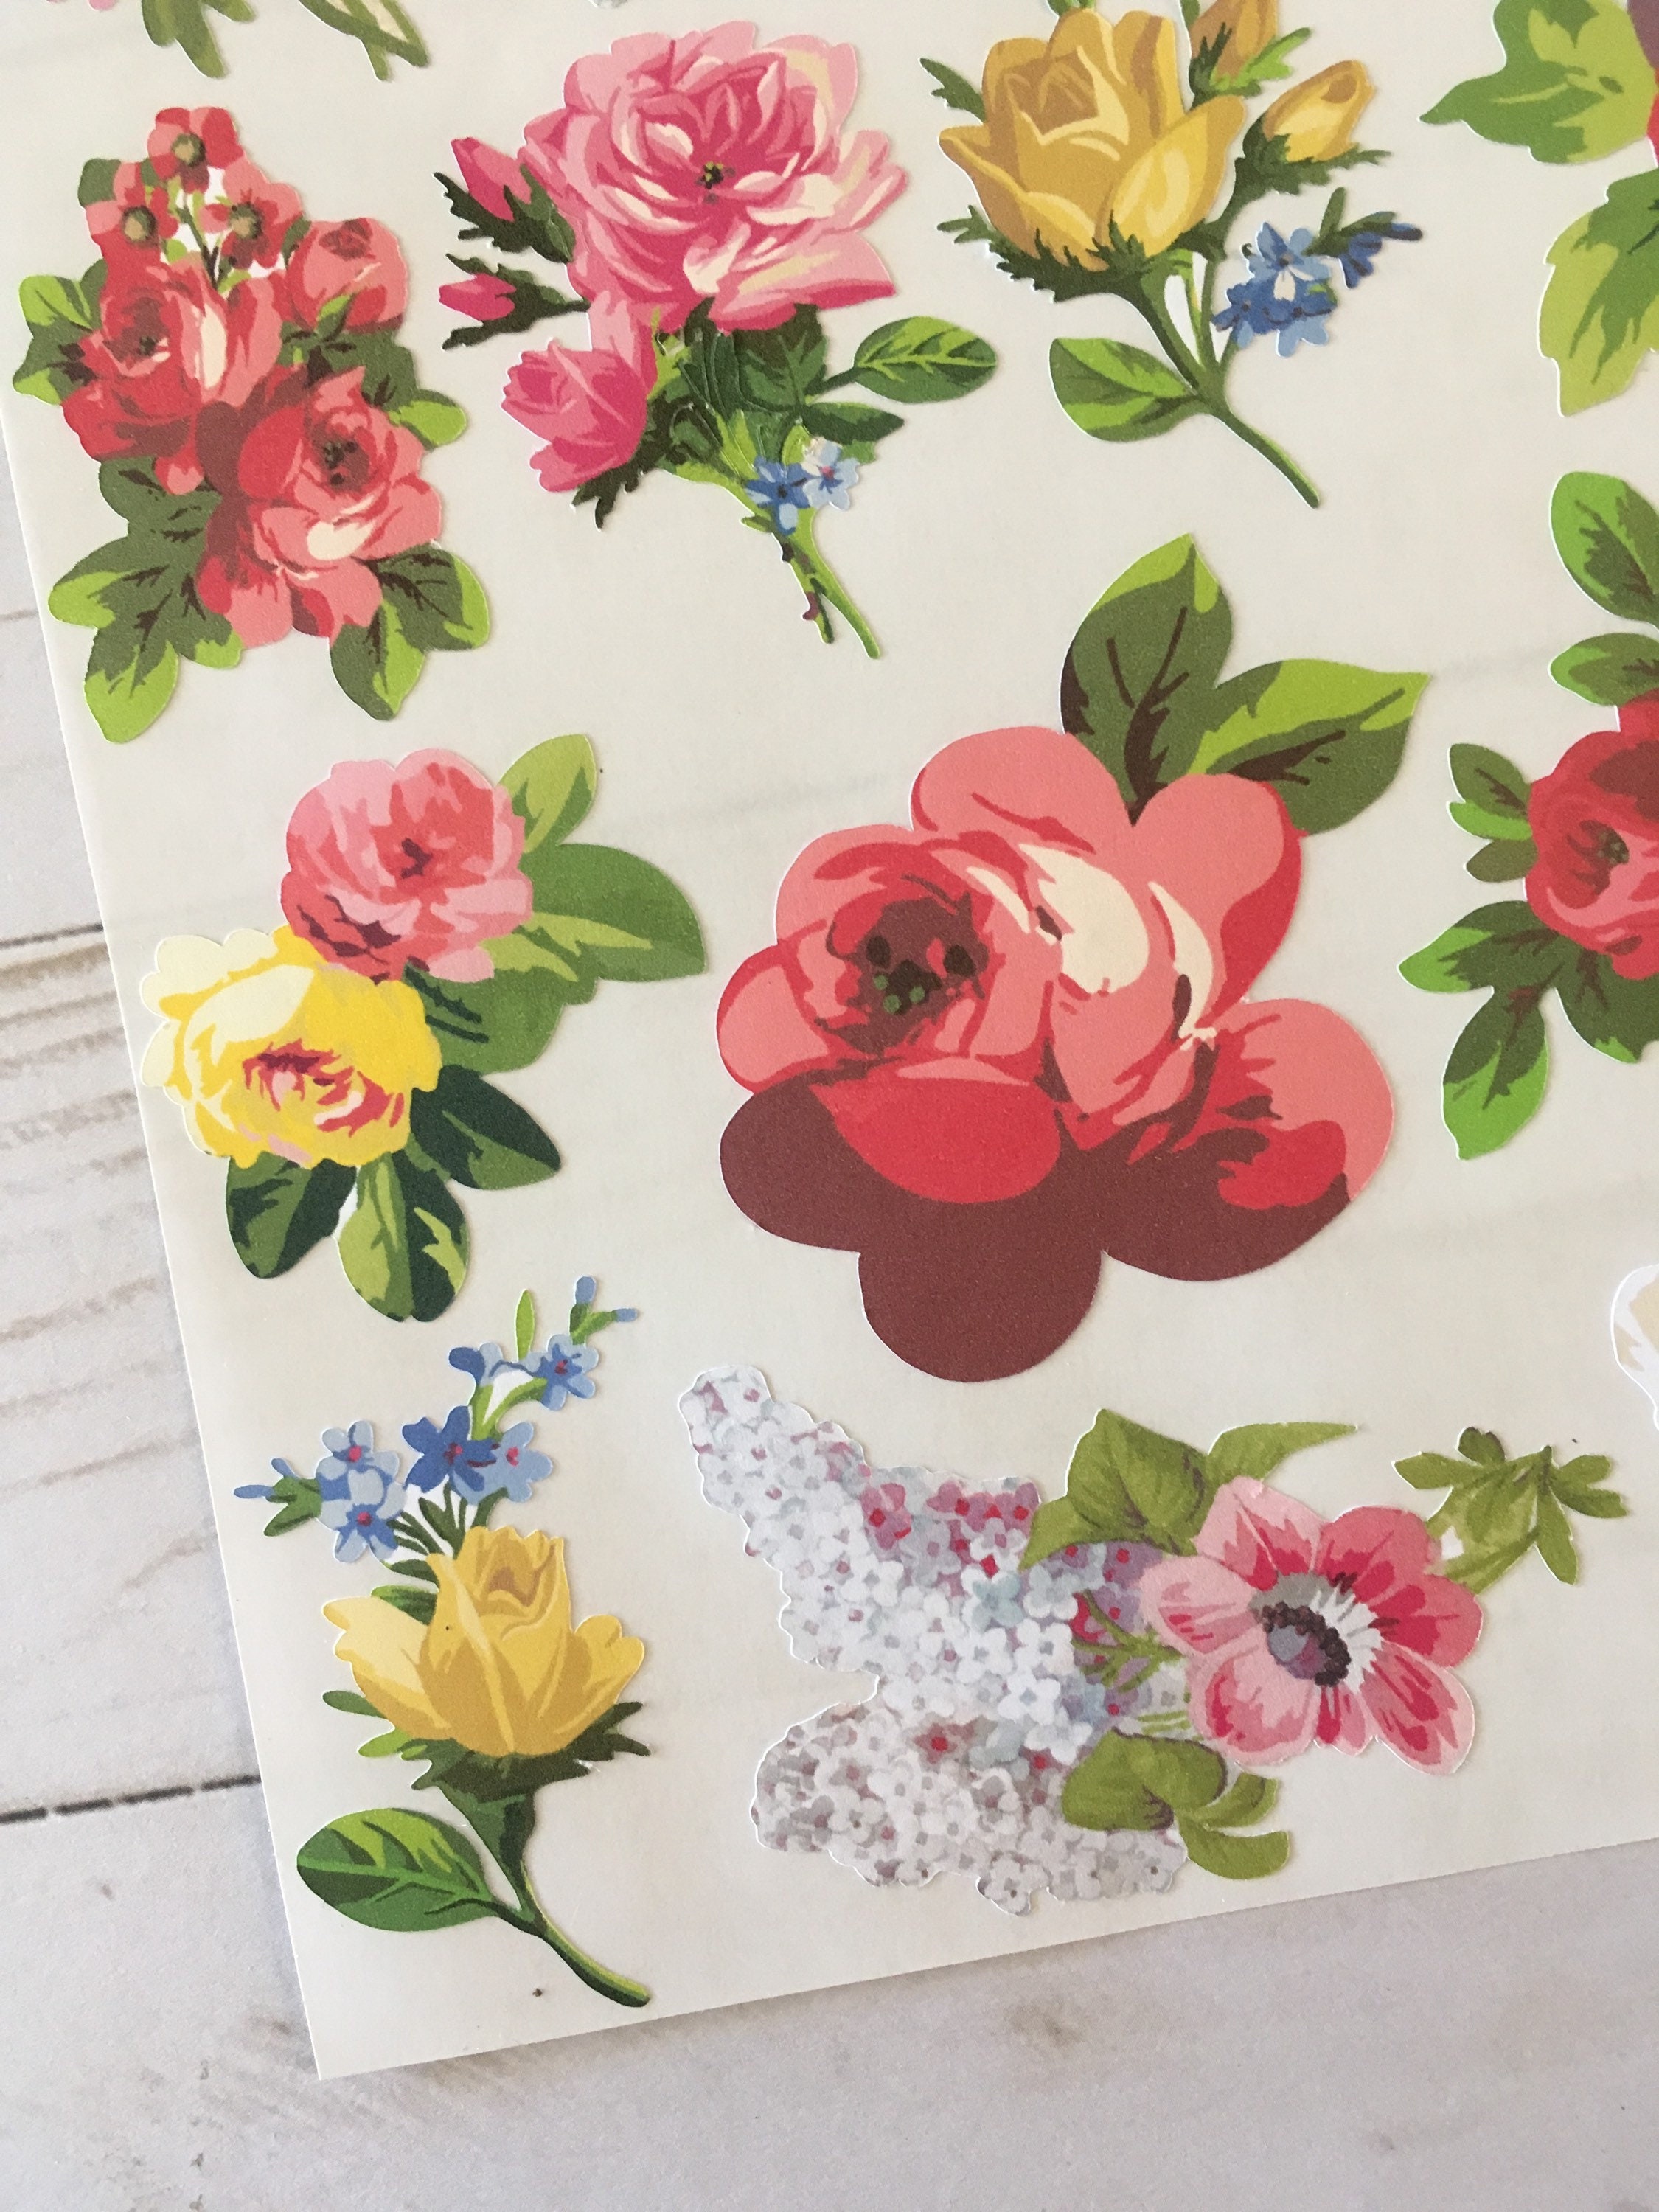 Vintage Styled Roses And Flowers Garden Sticker Sheet